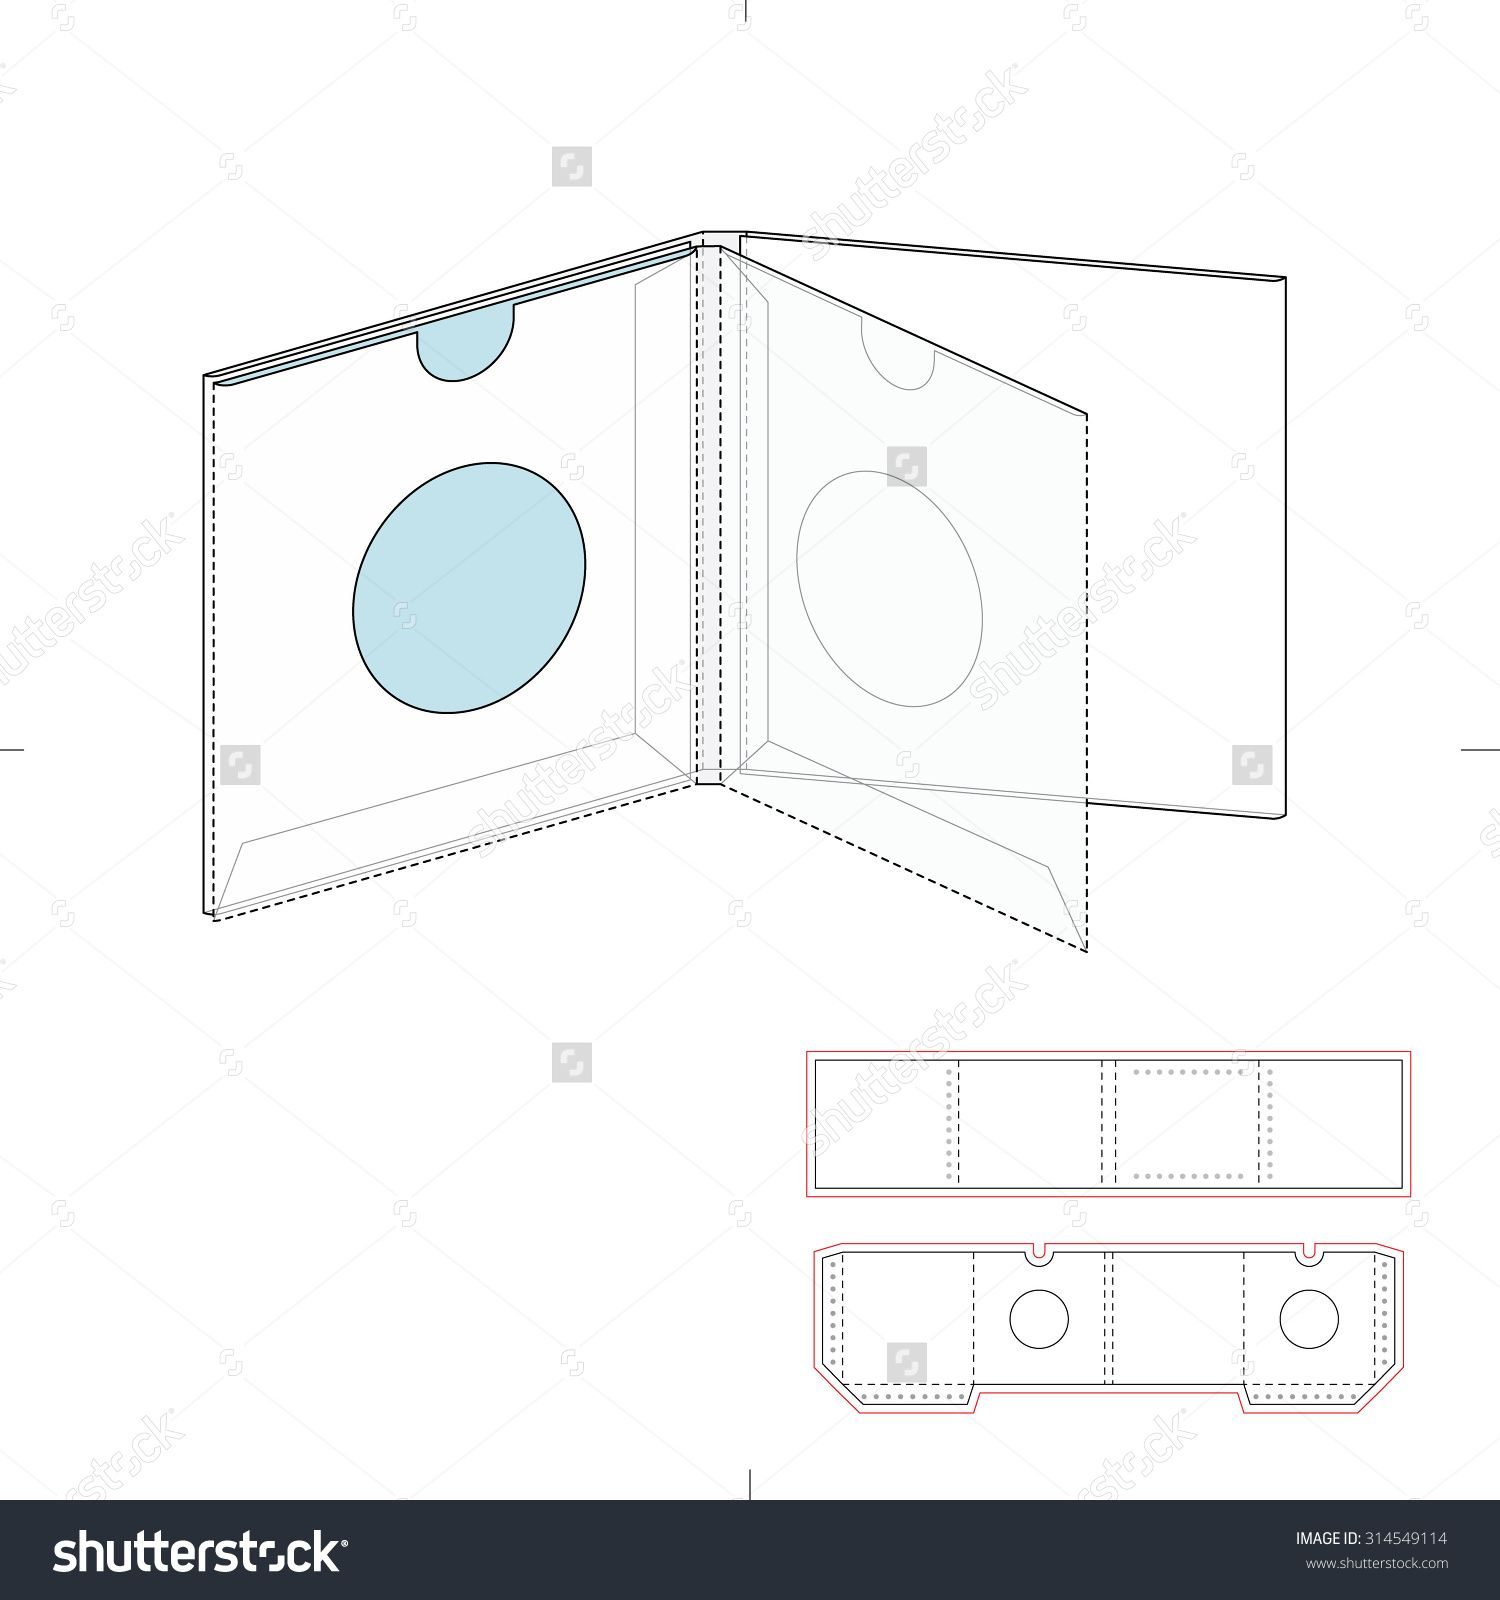 Cd & Dvd Brochure With Die Line Template Stock Vector Illustration ...